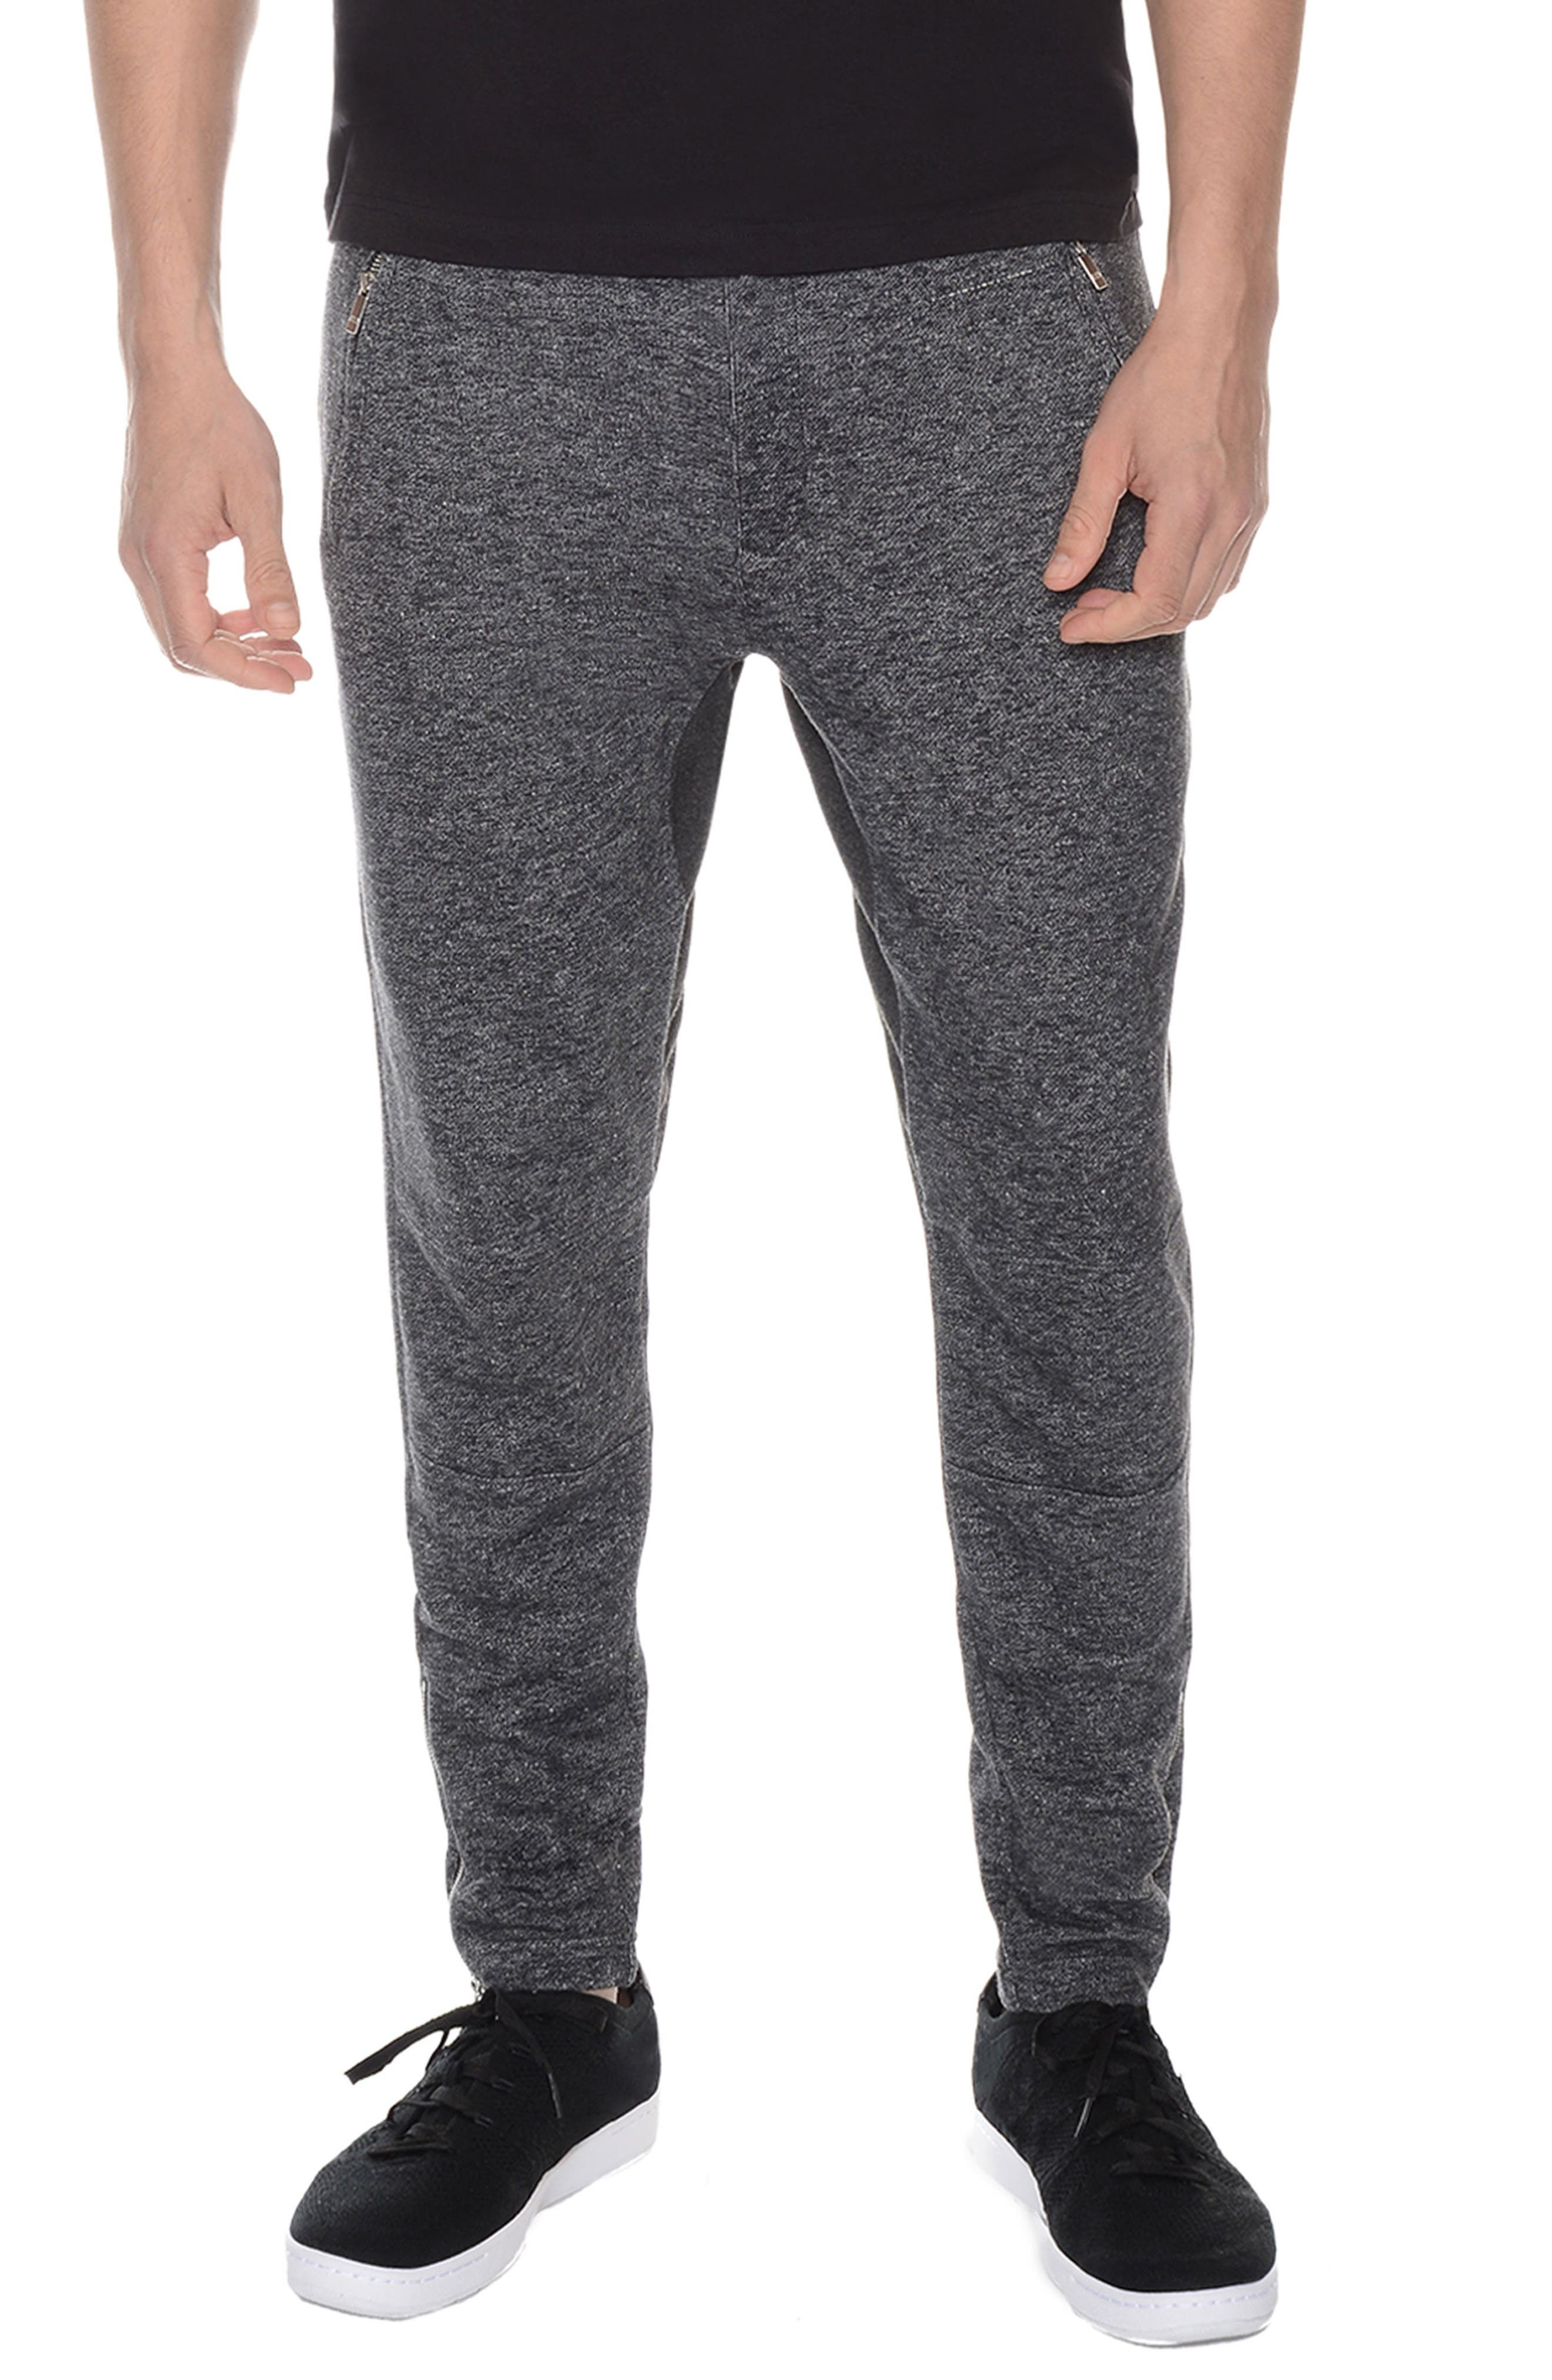 French Terry Lounge Pants,                         Main,                         color, Black Heather